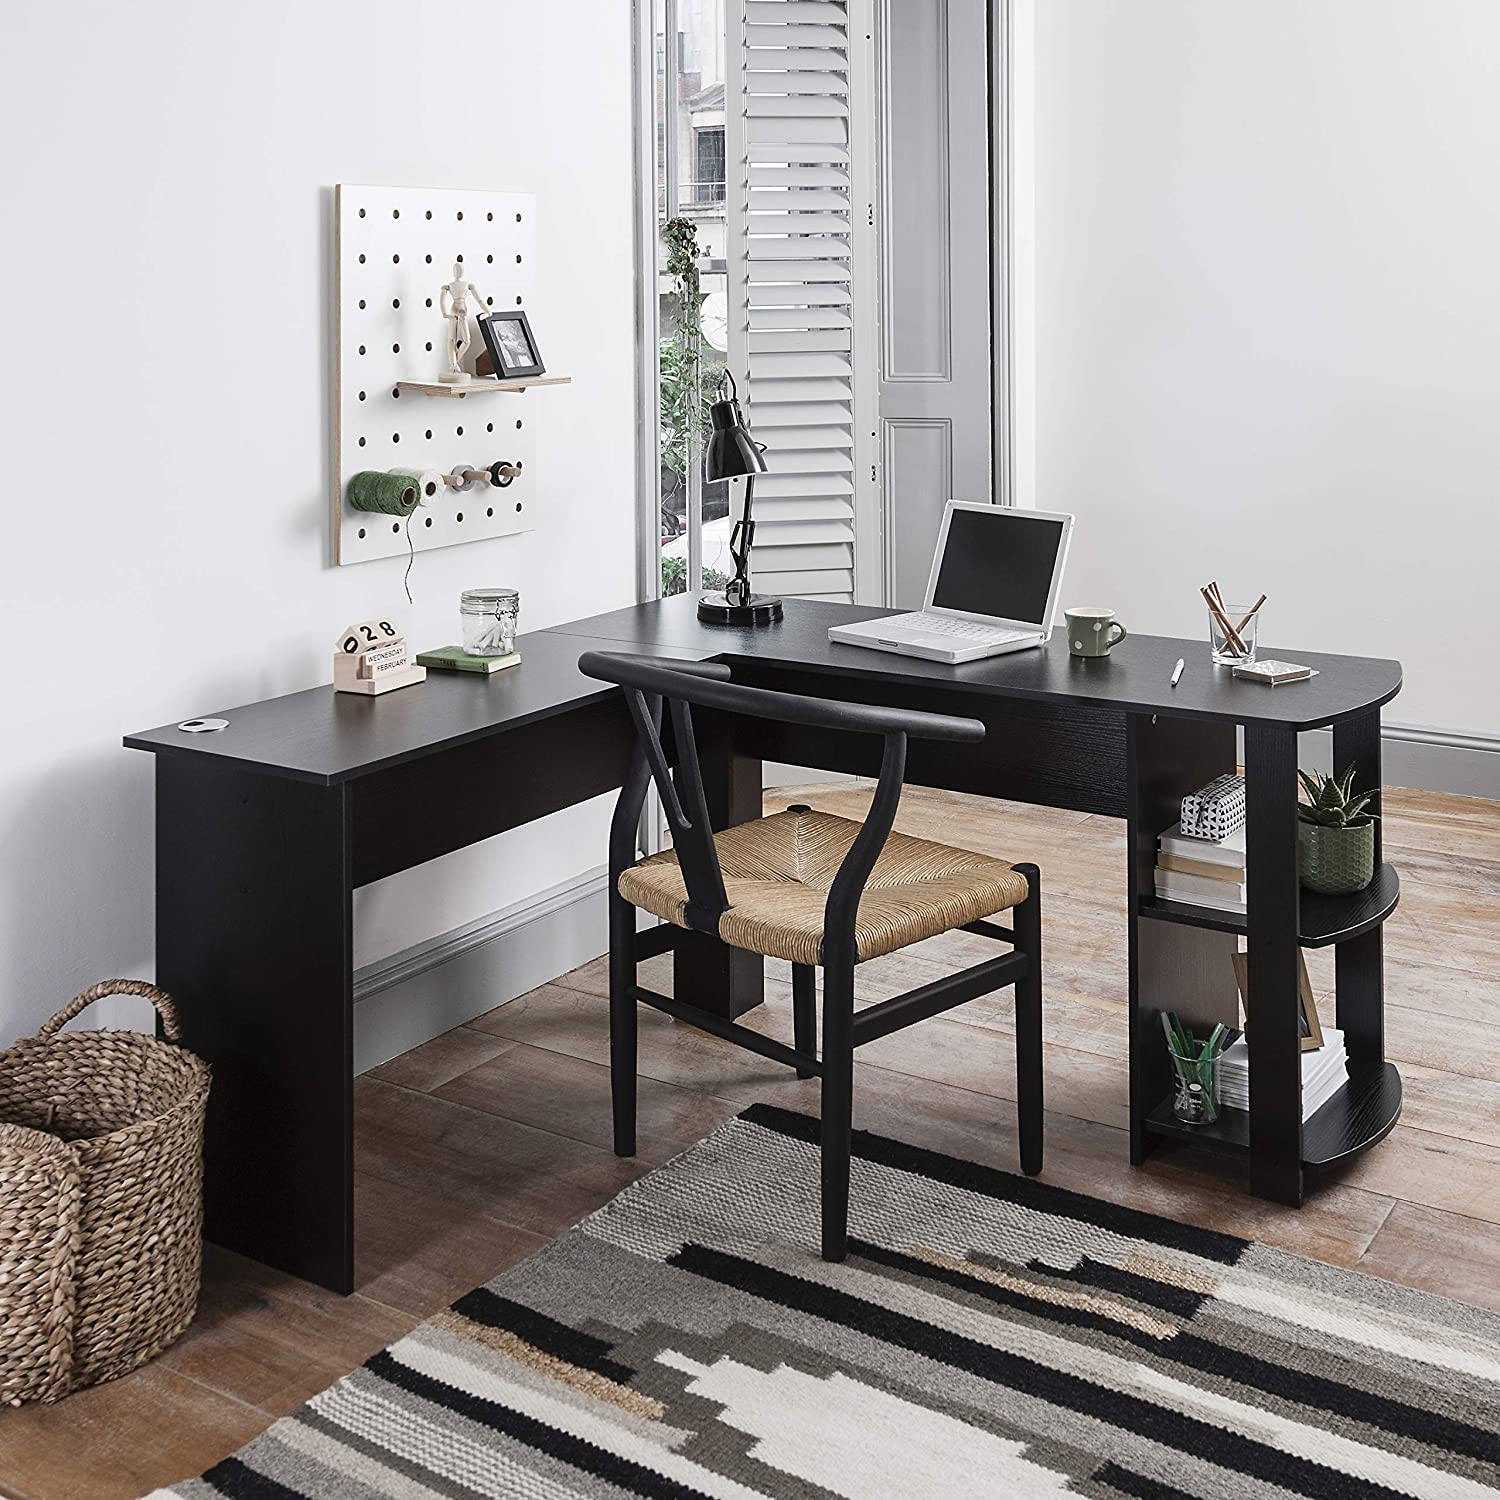 Laura James Black Corner Desk Computer Desk Home Office Desk